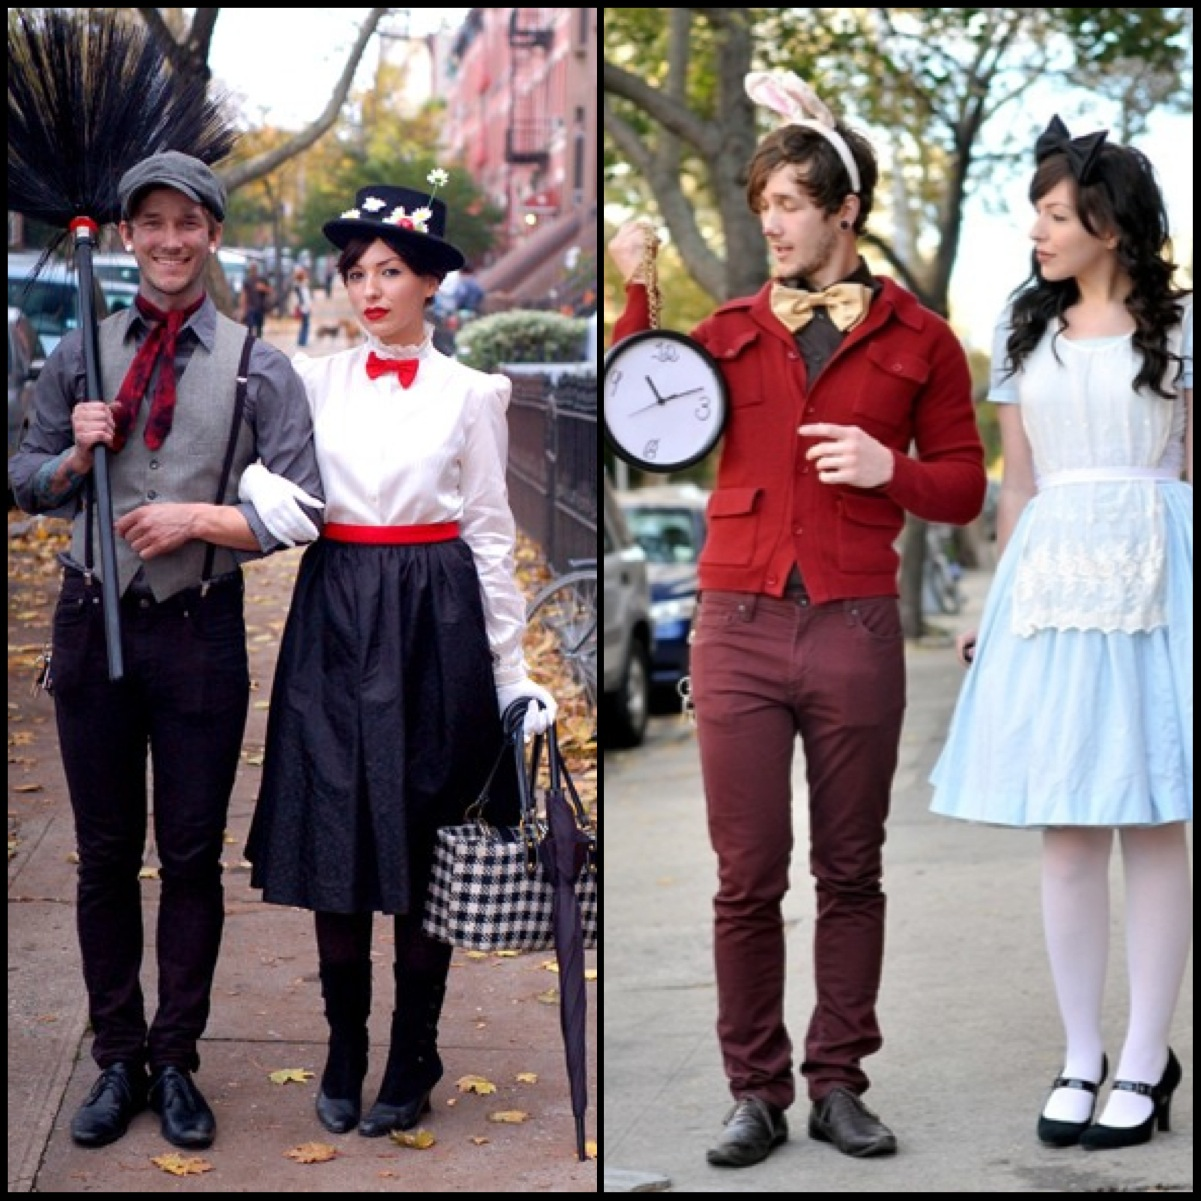 Mary Poppins Couples Costume One Mary Poppins Couples